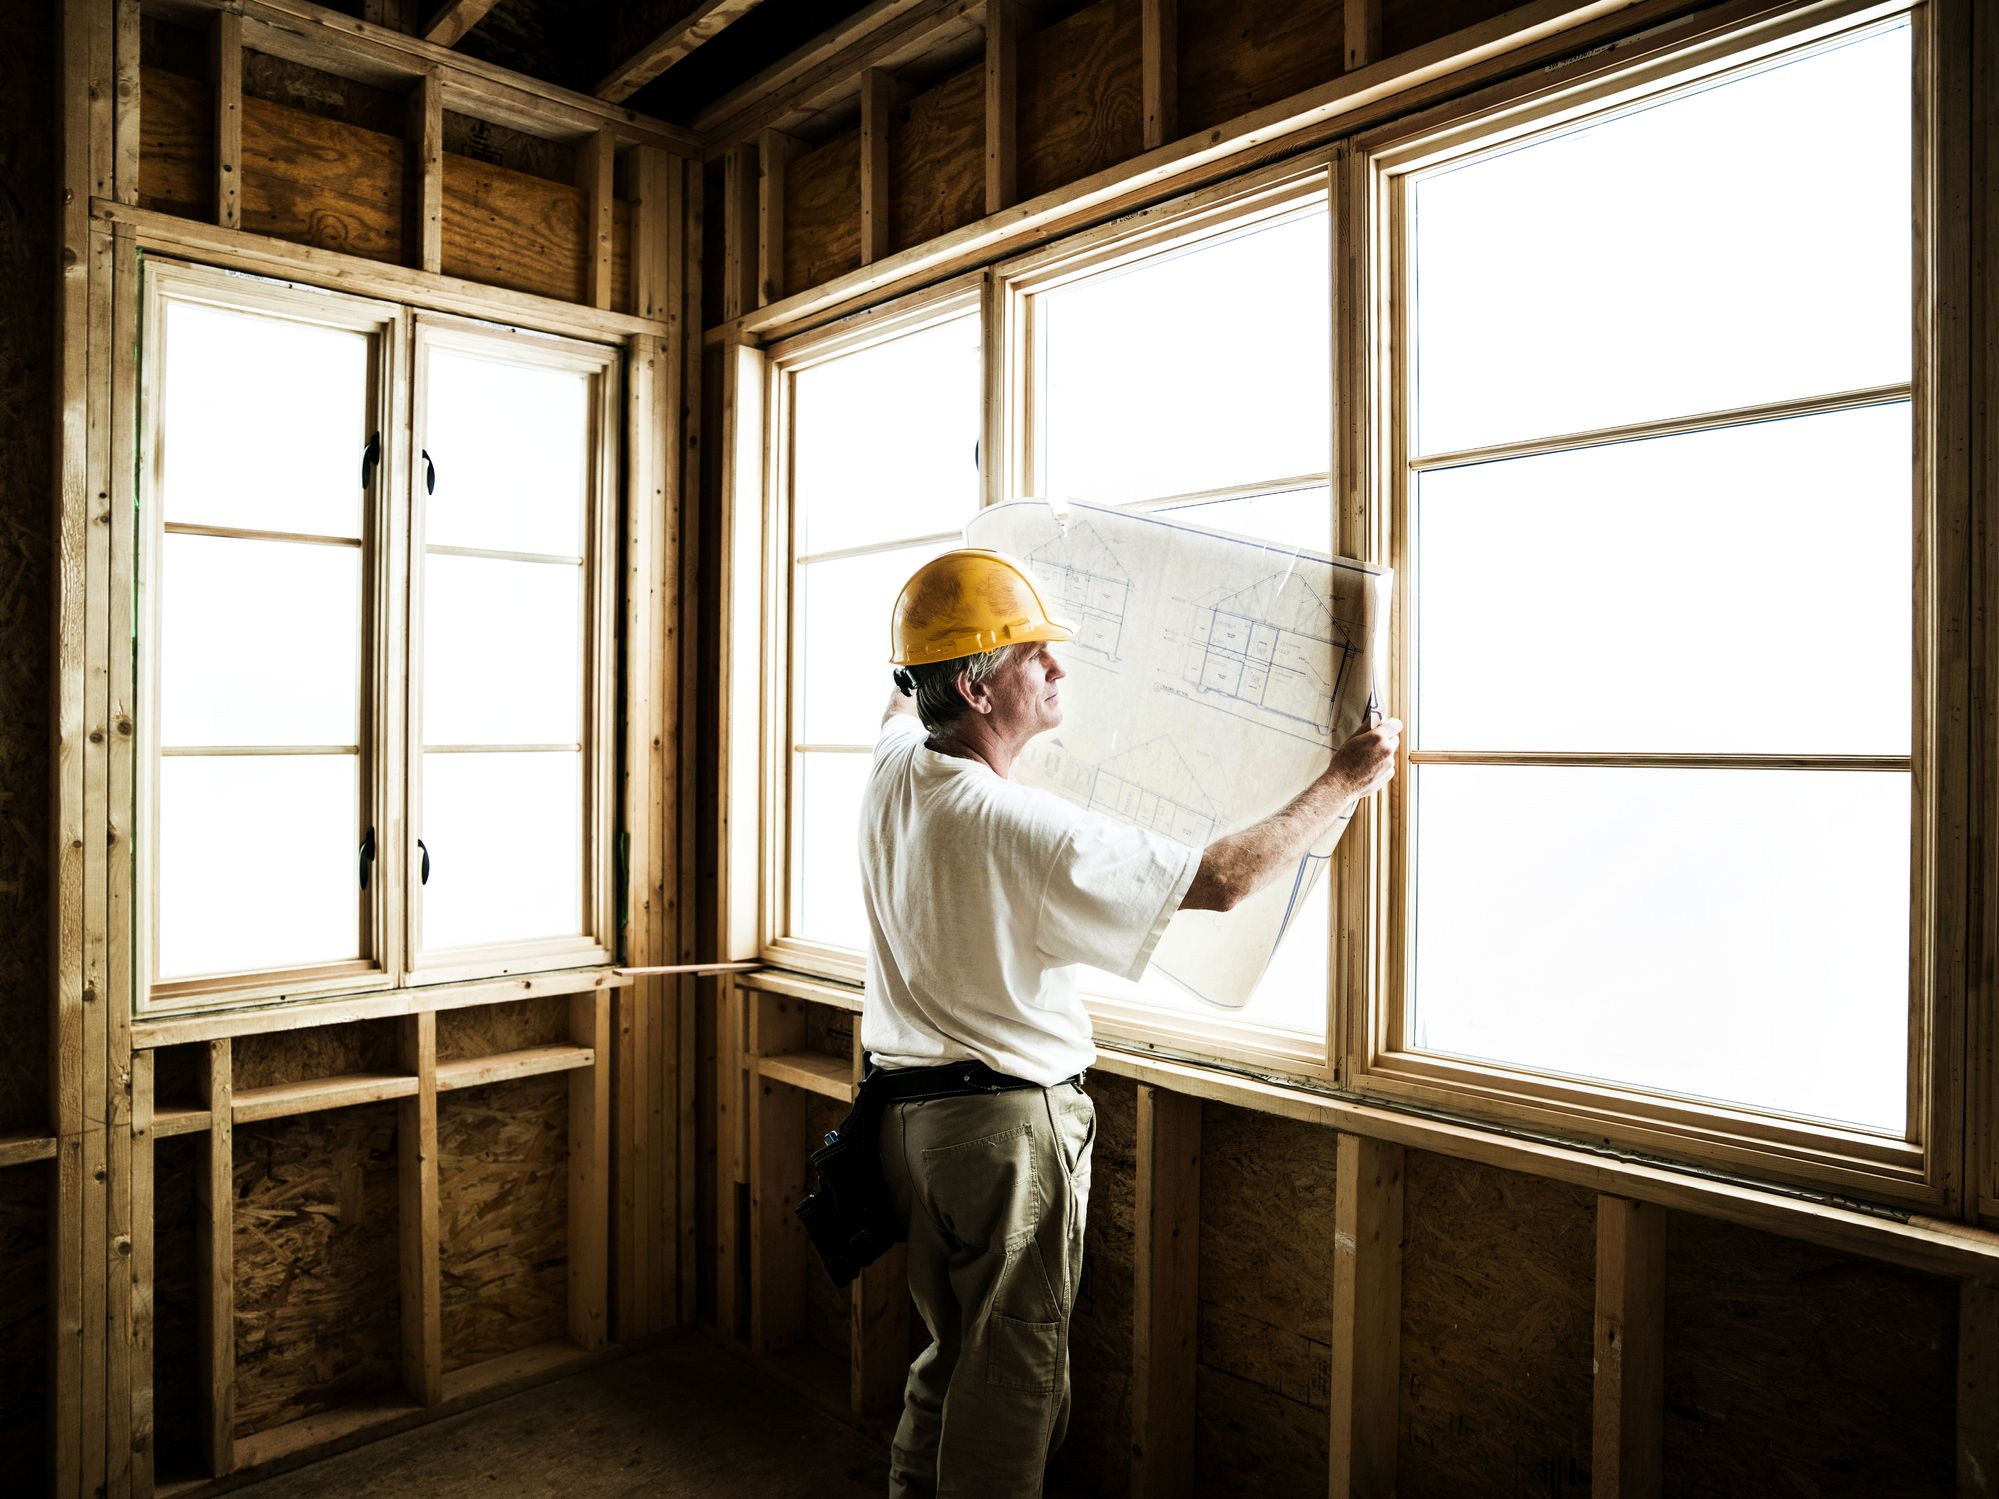 Do Remodeling Contractor Licenses Matter